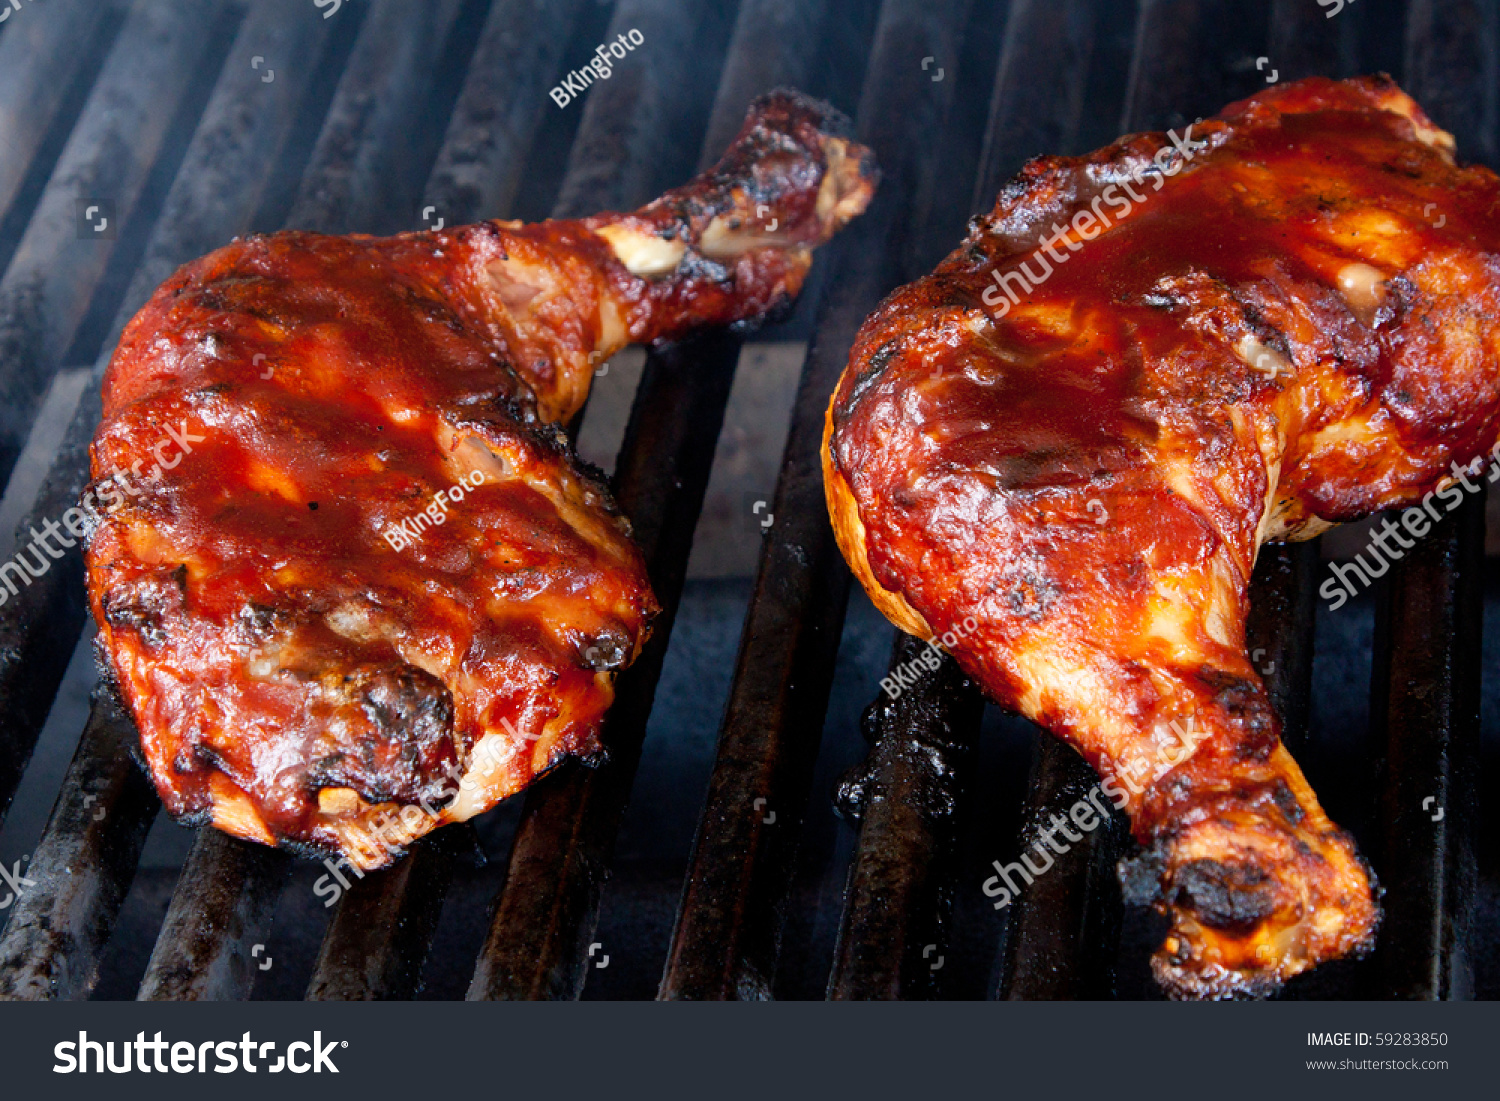 Chicken Leg Quarters On Barbecue Grill Preview Save To A Lightbox Chicken  Leg Quarters On Barbecue